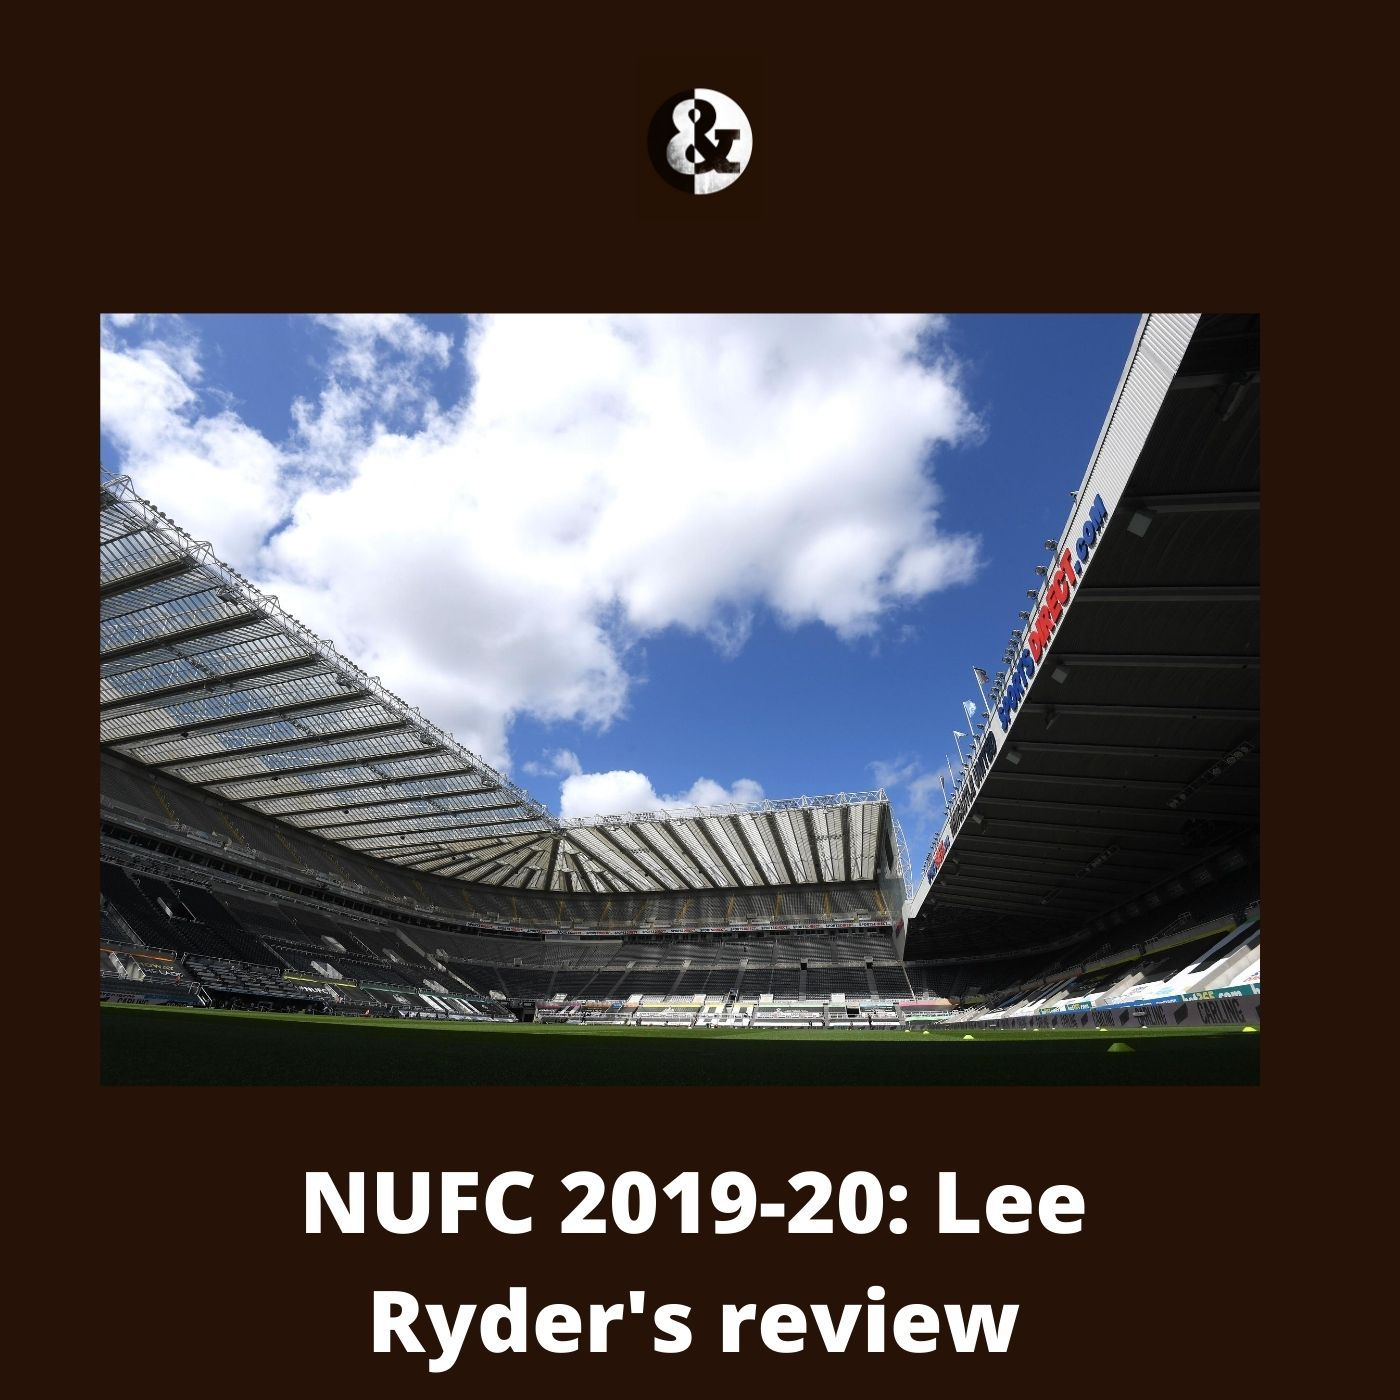 Takeover distractions and Steve Bruce verdict - NUFC's 2019-20 campaign